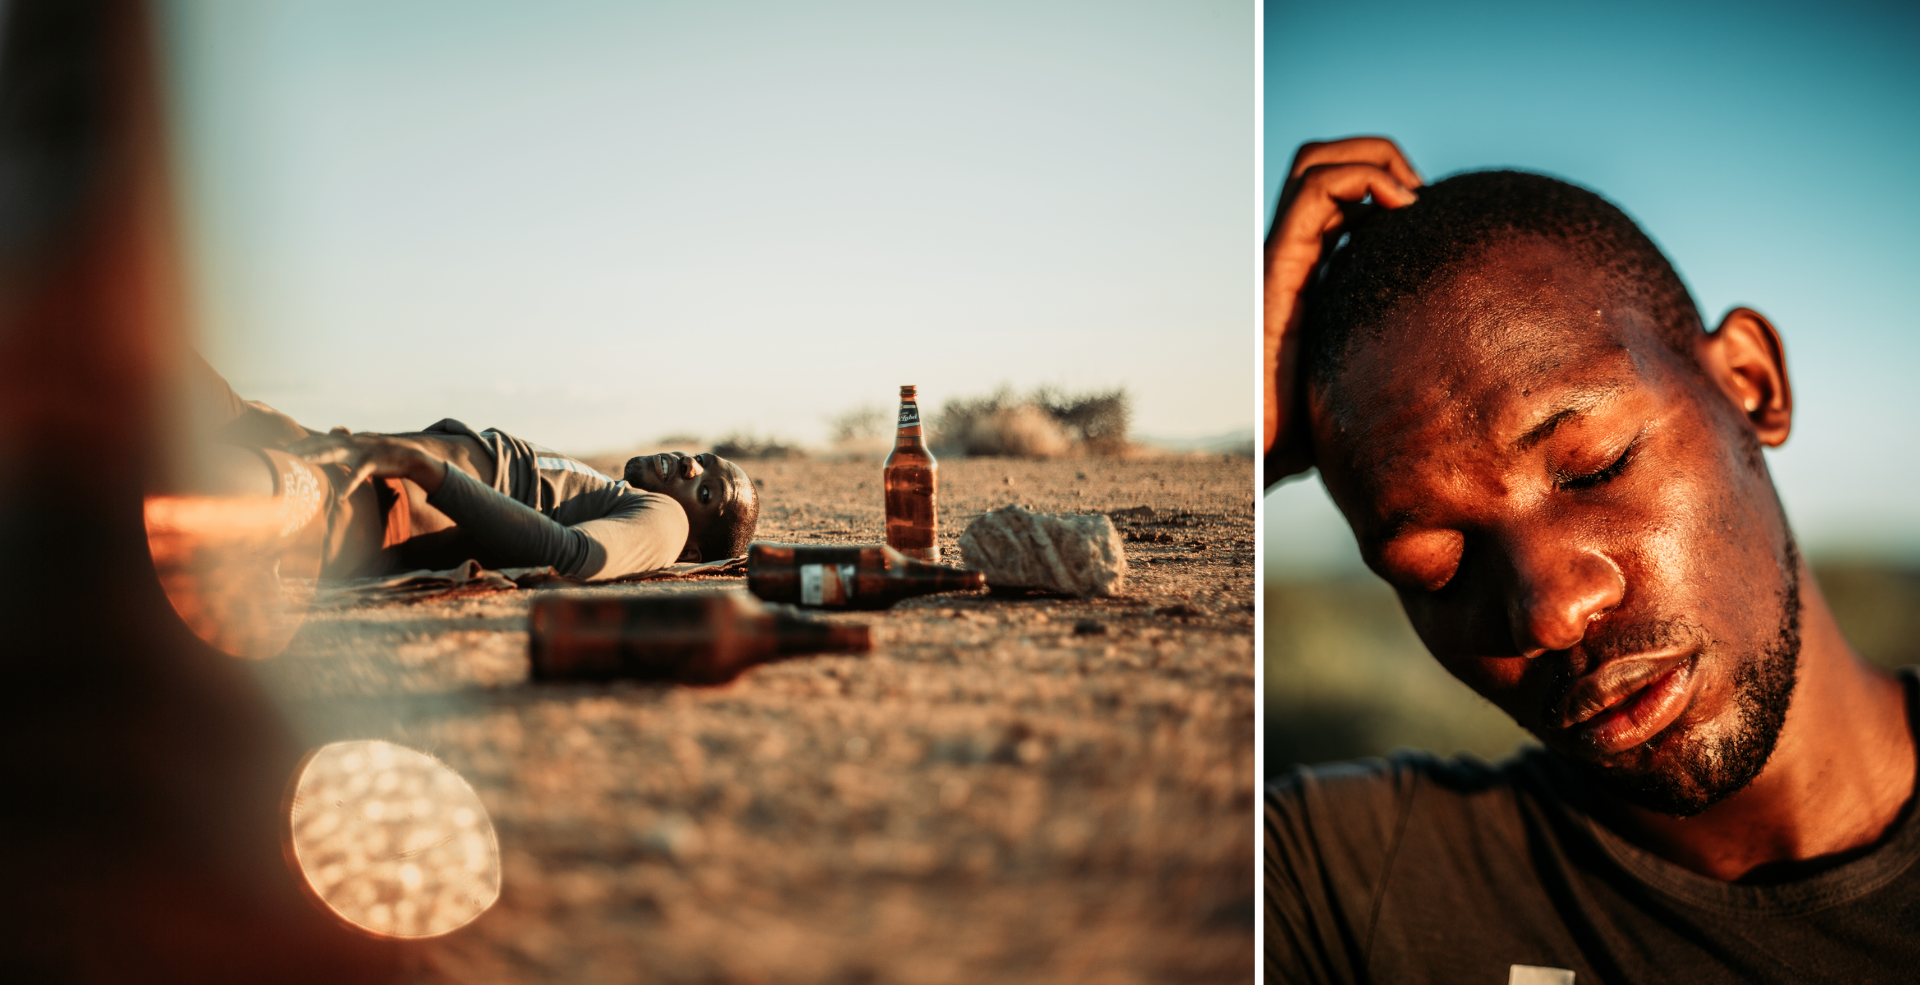 Young man lies on the sand, surrounded by beer bottles. Second image shows a close up of his face, against a blue sky, with eyes closed and hand resting on his head